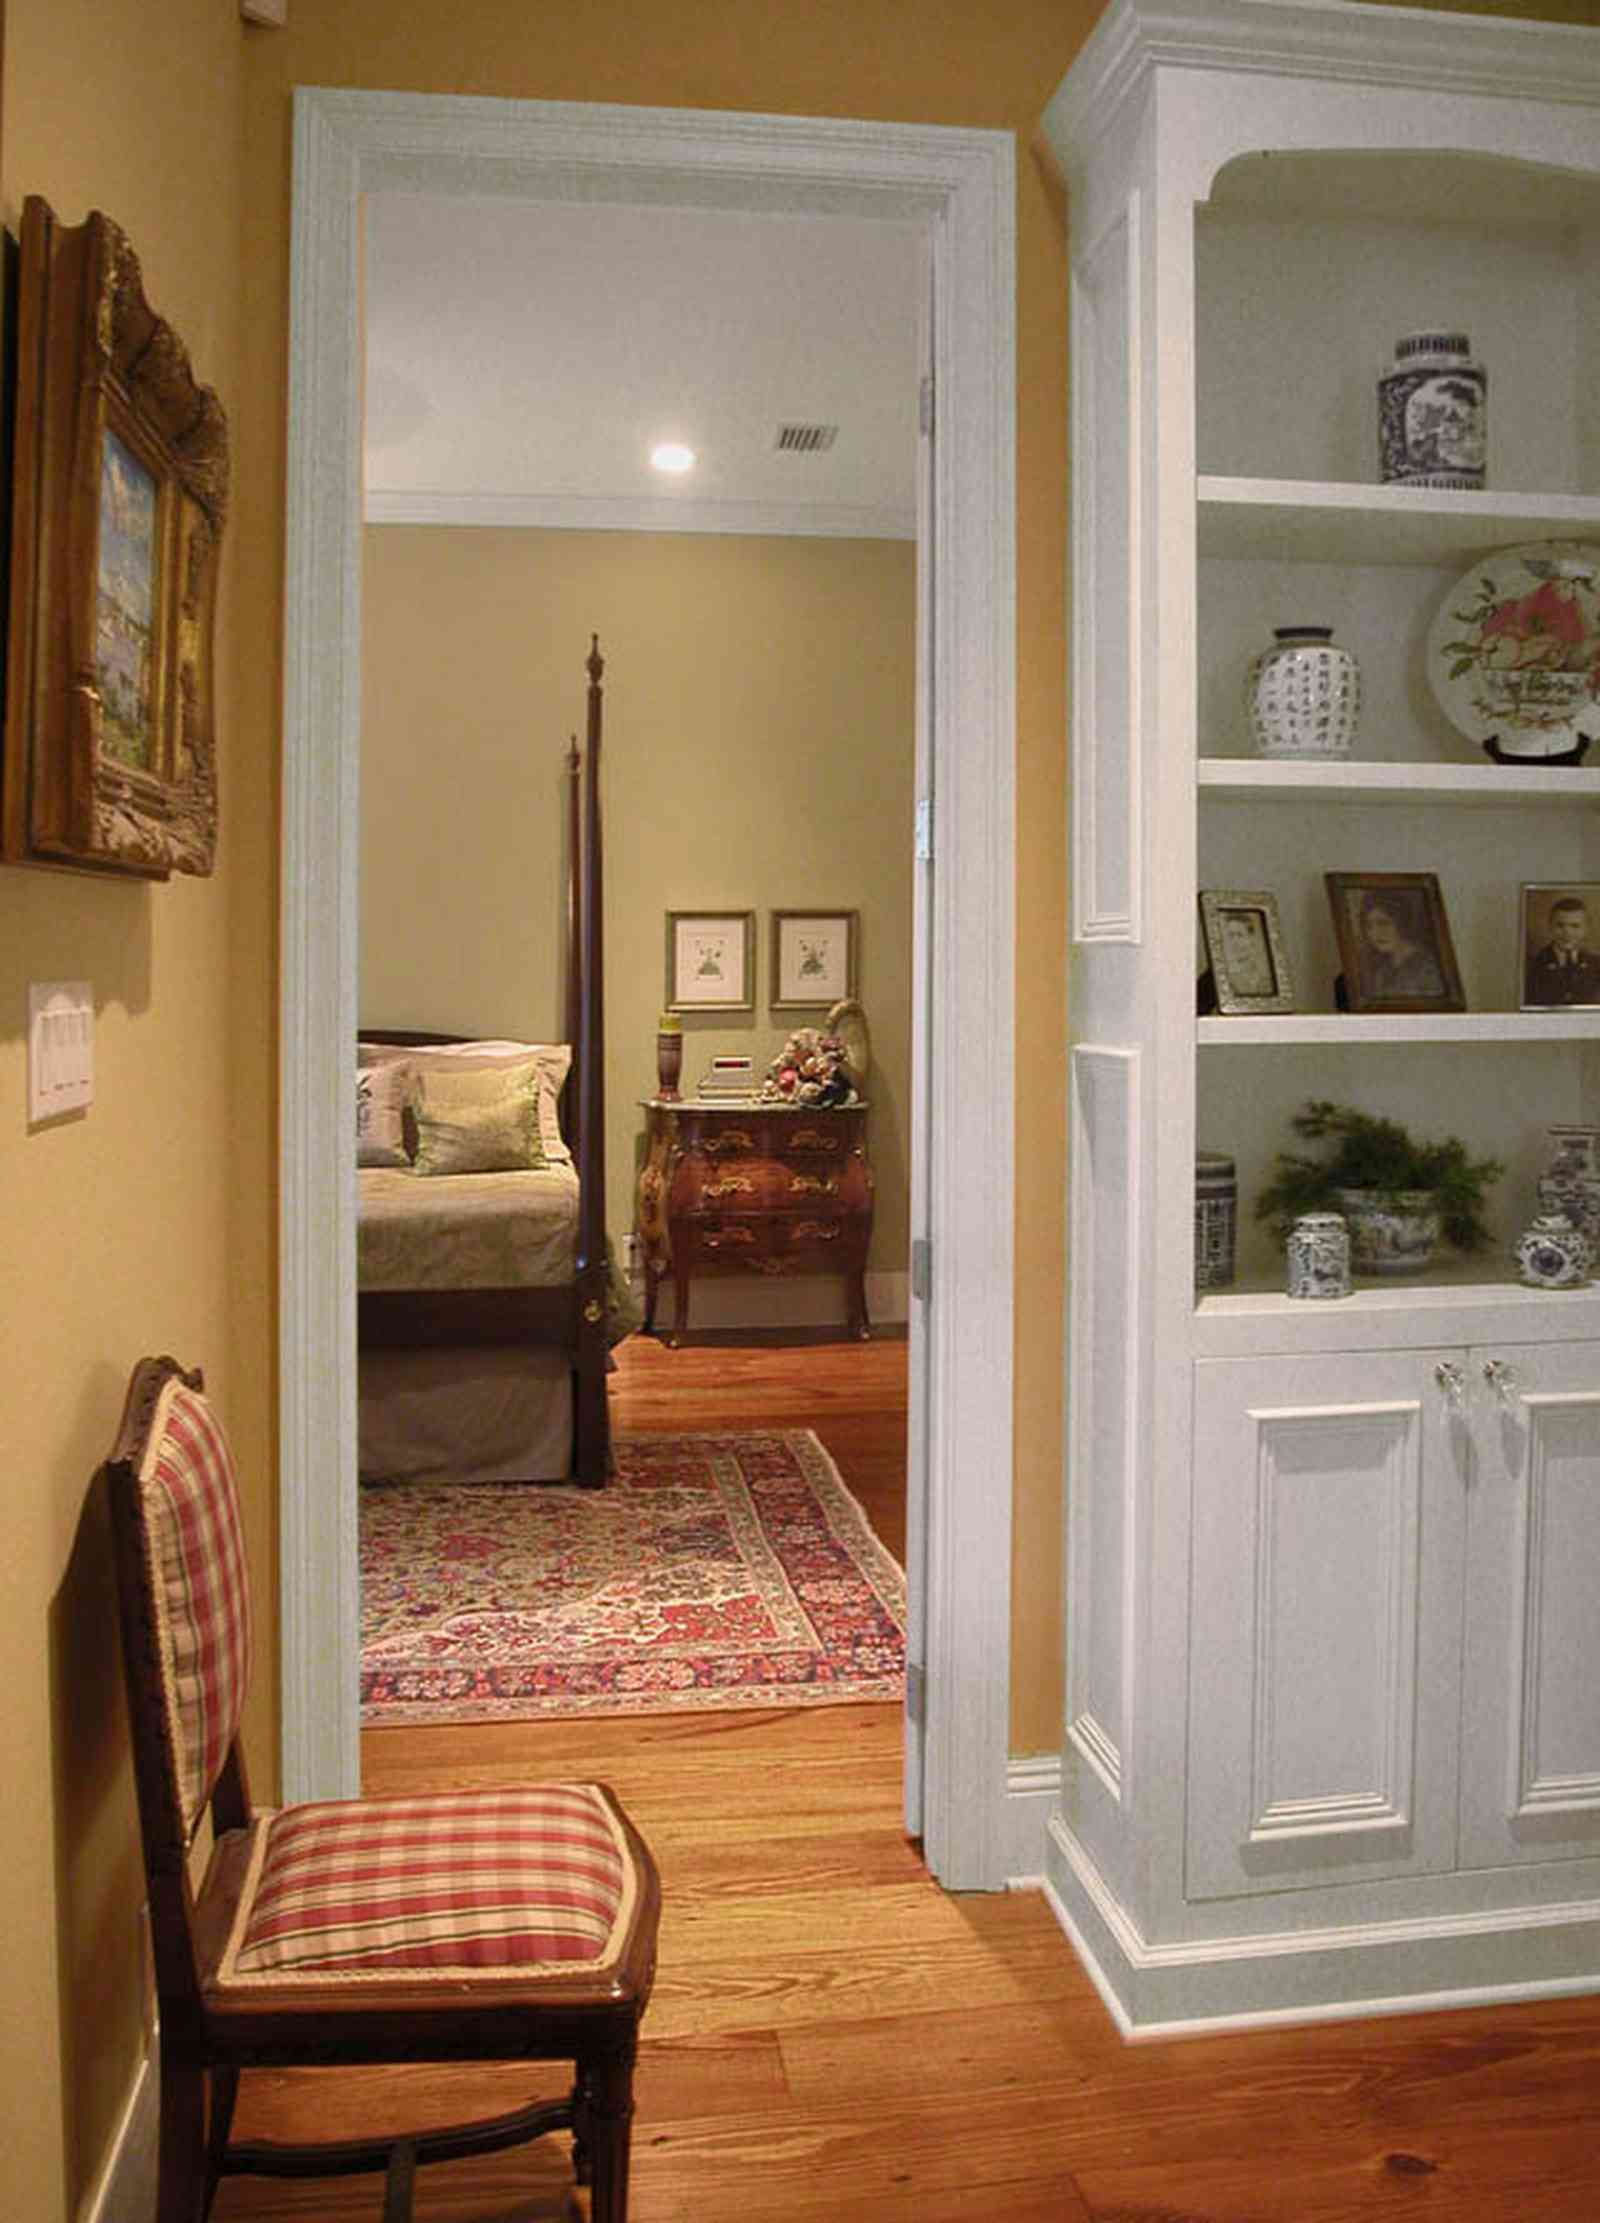 East-Pensacola-Heights:-112-Chipley-Avenue_07.jpg:  four poster bed, oriental rug, cupboard, library, heart-pine floors